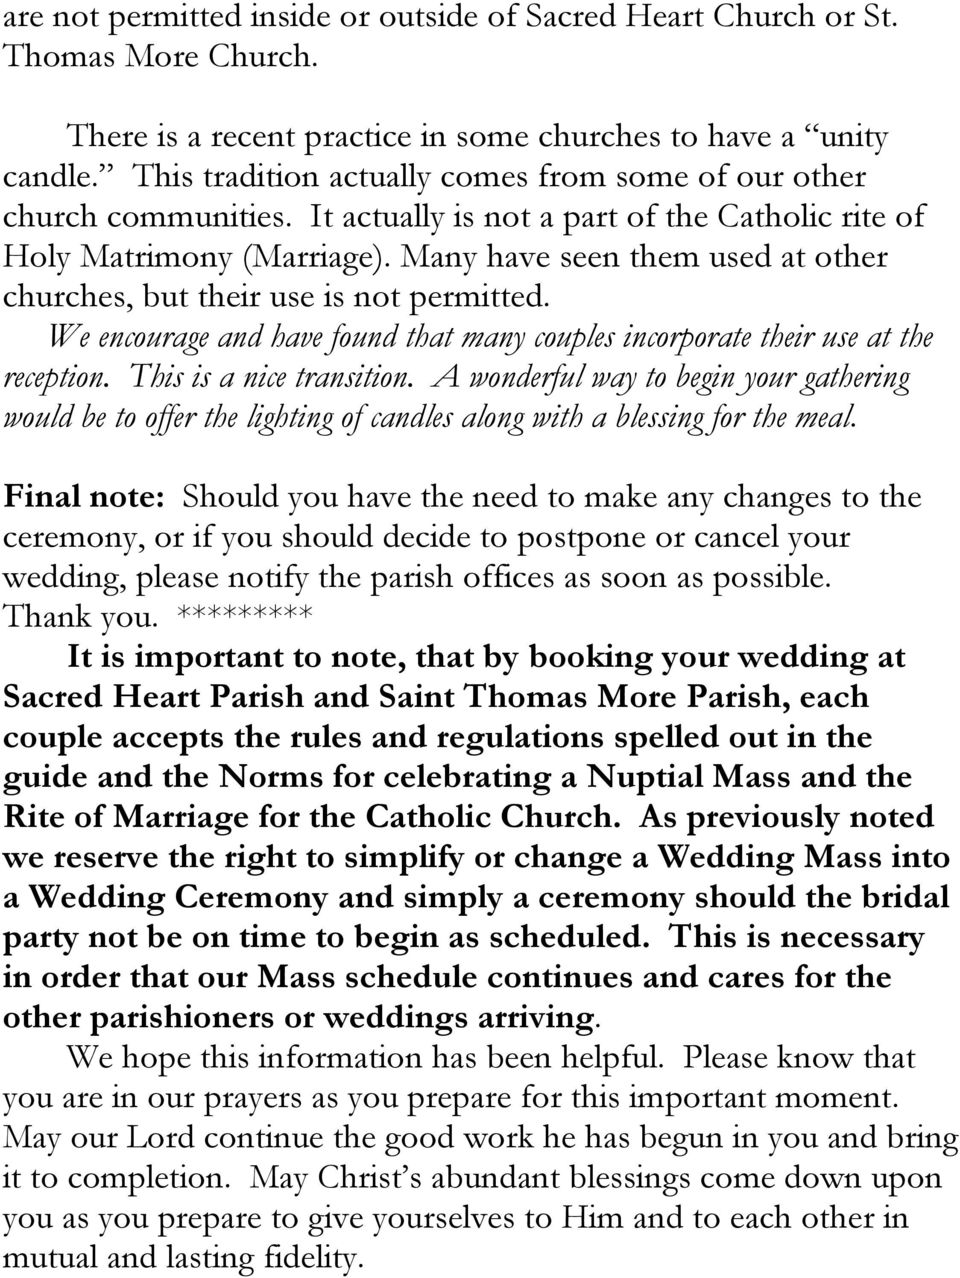 Many have seen them used at other churches, but their use is not permitted. We encourage and have found that many couples incorporate their use at the reception. This is a nice transition.